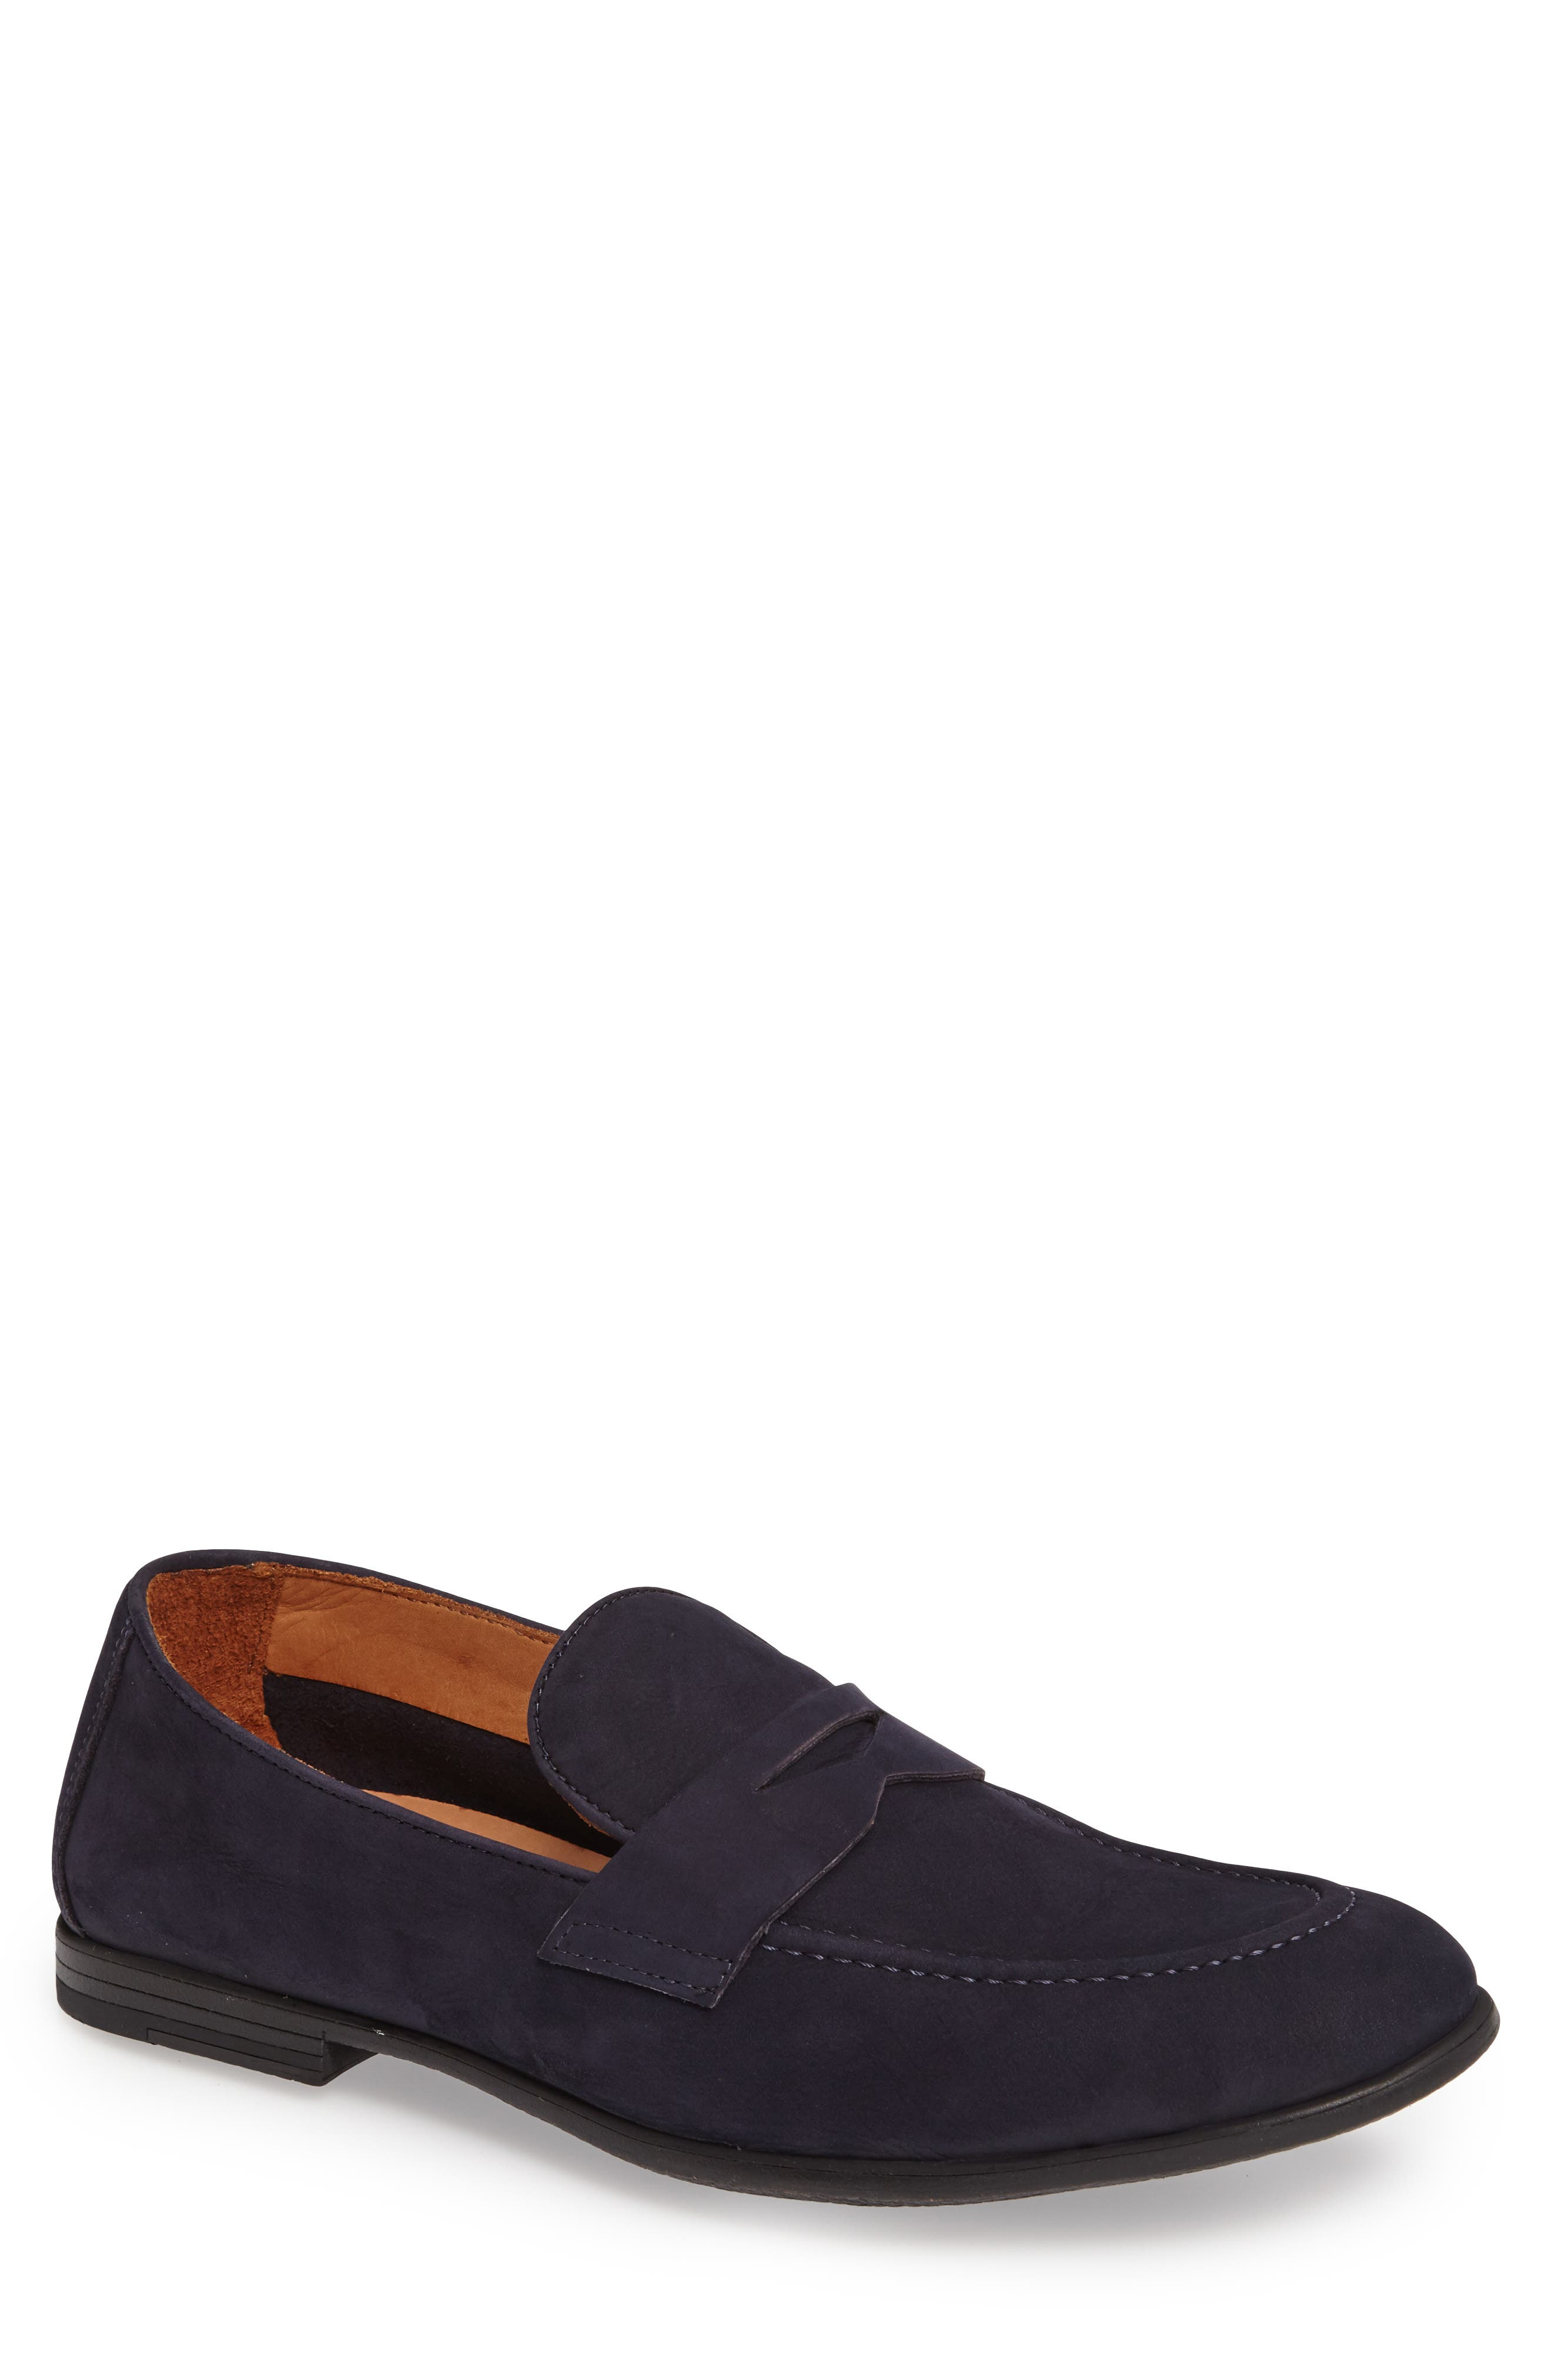 Dillon Penny Loafer,                             Main thumbnail 1, color,                             Marino Leather